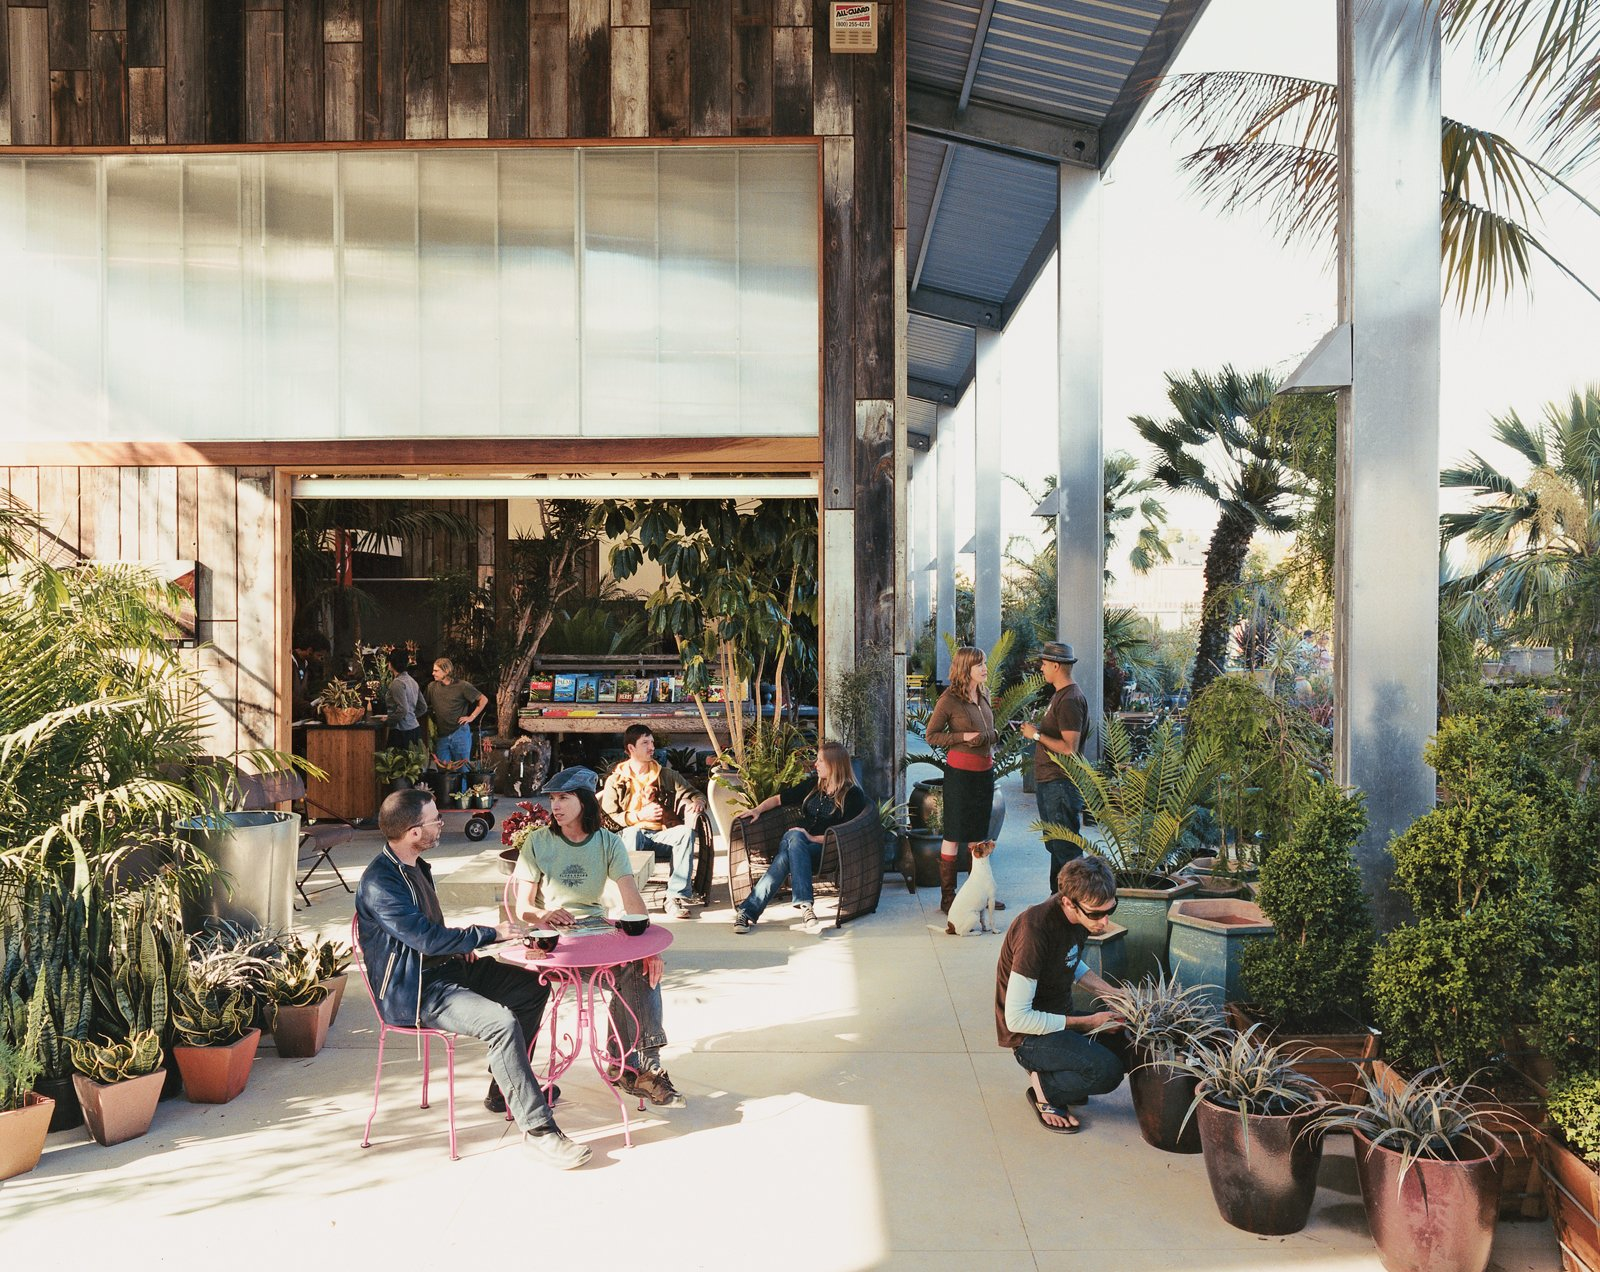 The new location of Flora Grubb Gardens, in Bayview, boasts 8,000 square feet of foliage. Architects Seth Boor and Bonnie Bridges, of Boor Bridges Architecture, created the barn-like structure.